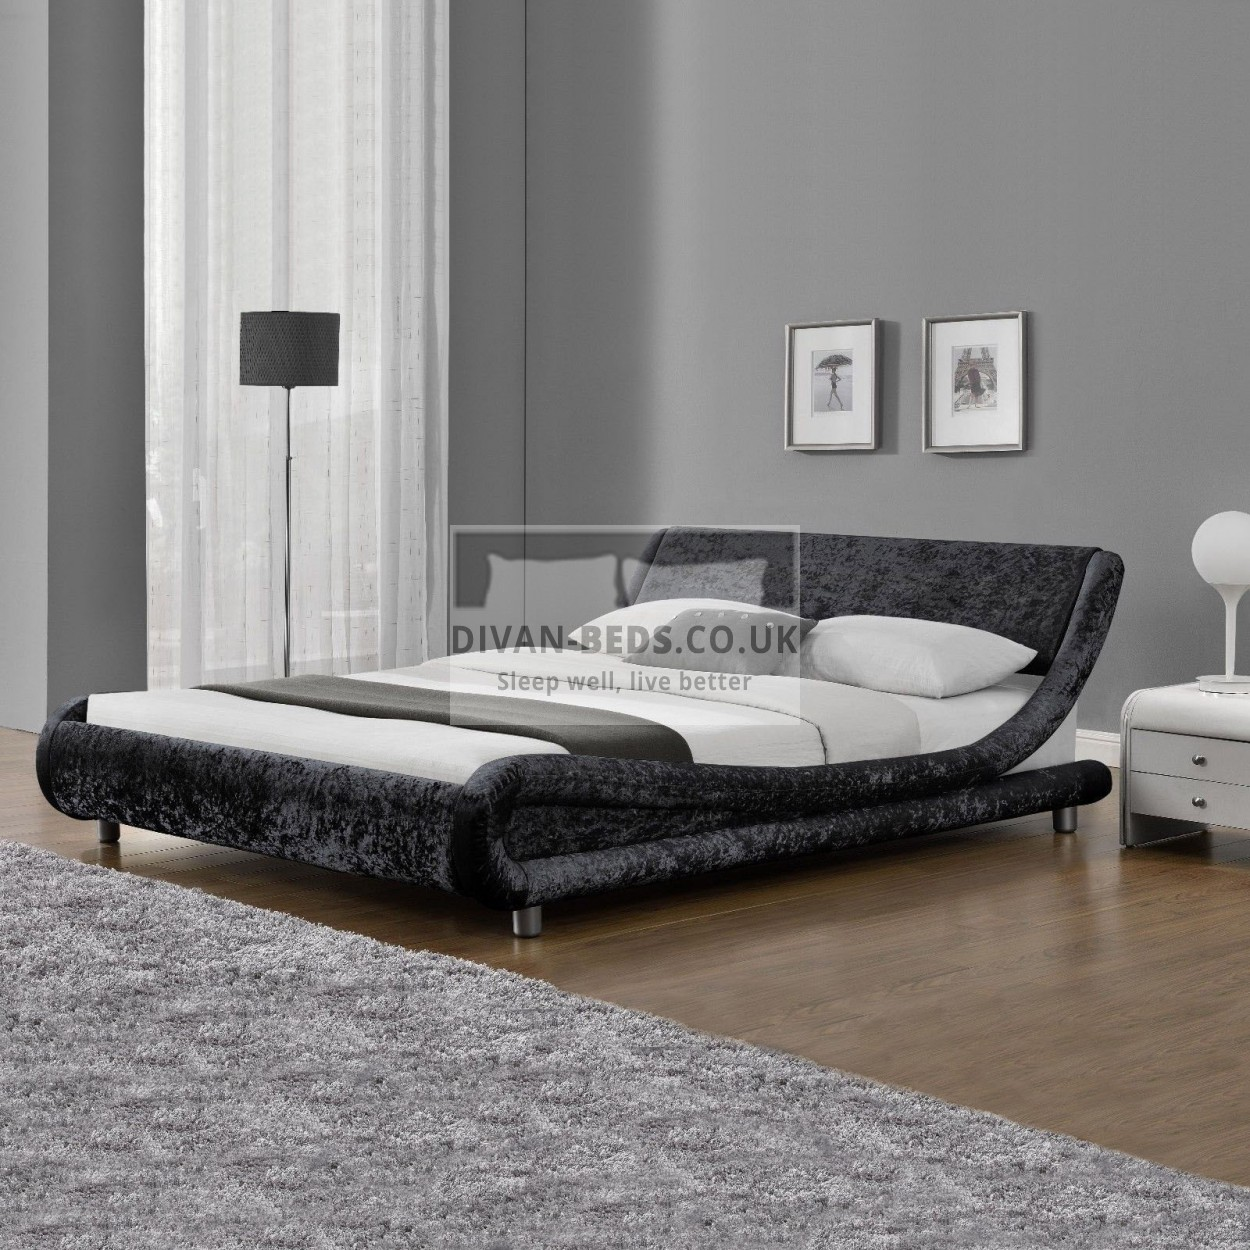 Volo Italian Modern Crushed Velvet Bed Frame Guaranteed Cheapest Free Fast Delivery